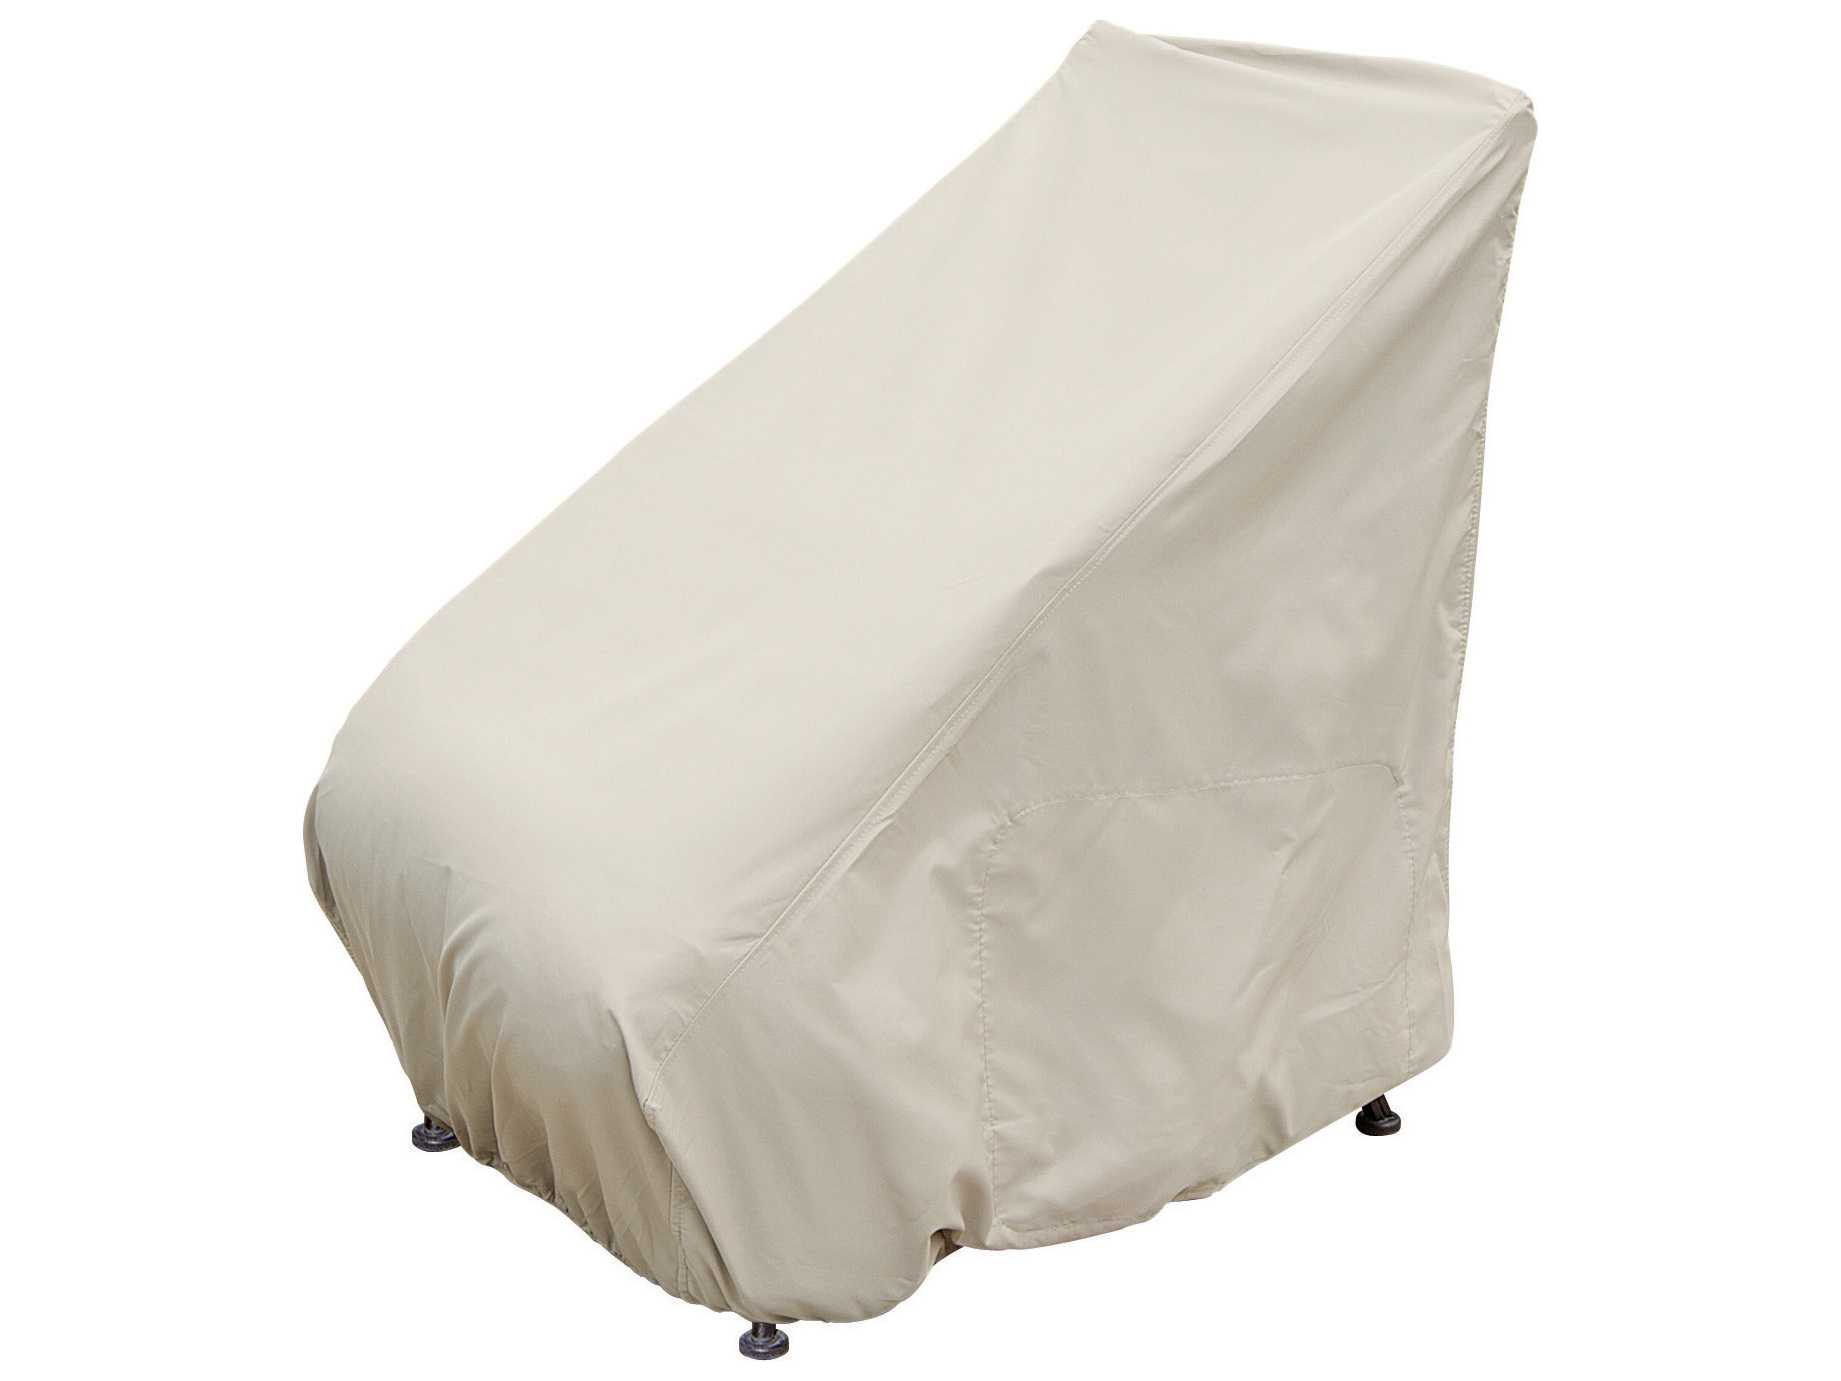 Treasure garden recliner chair cover cp113 for Treasure garden patio furniture covers